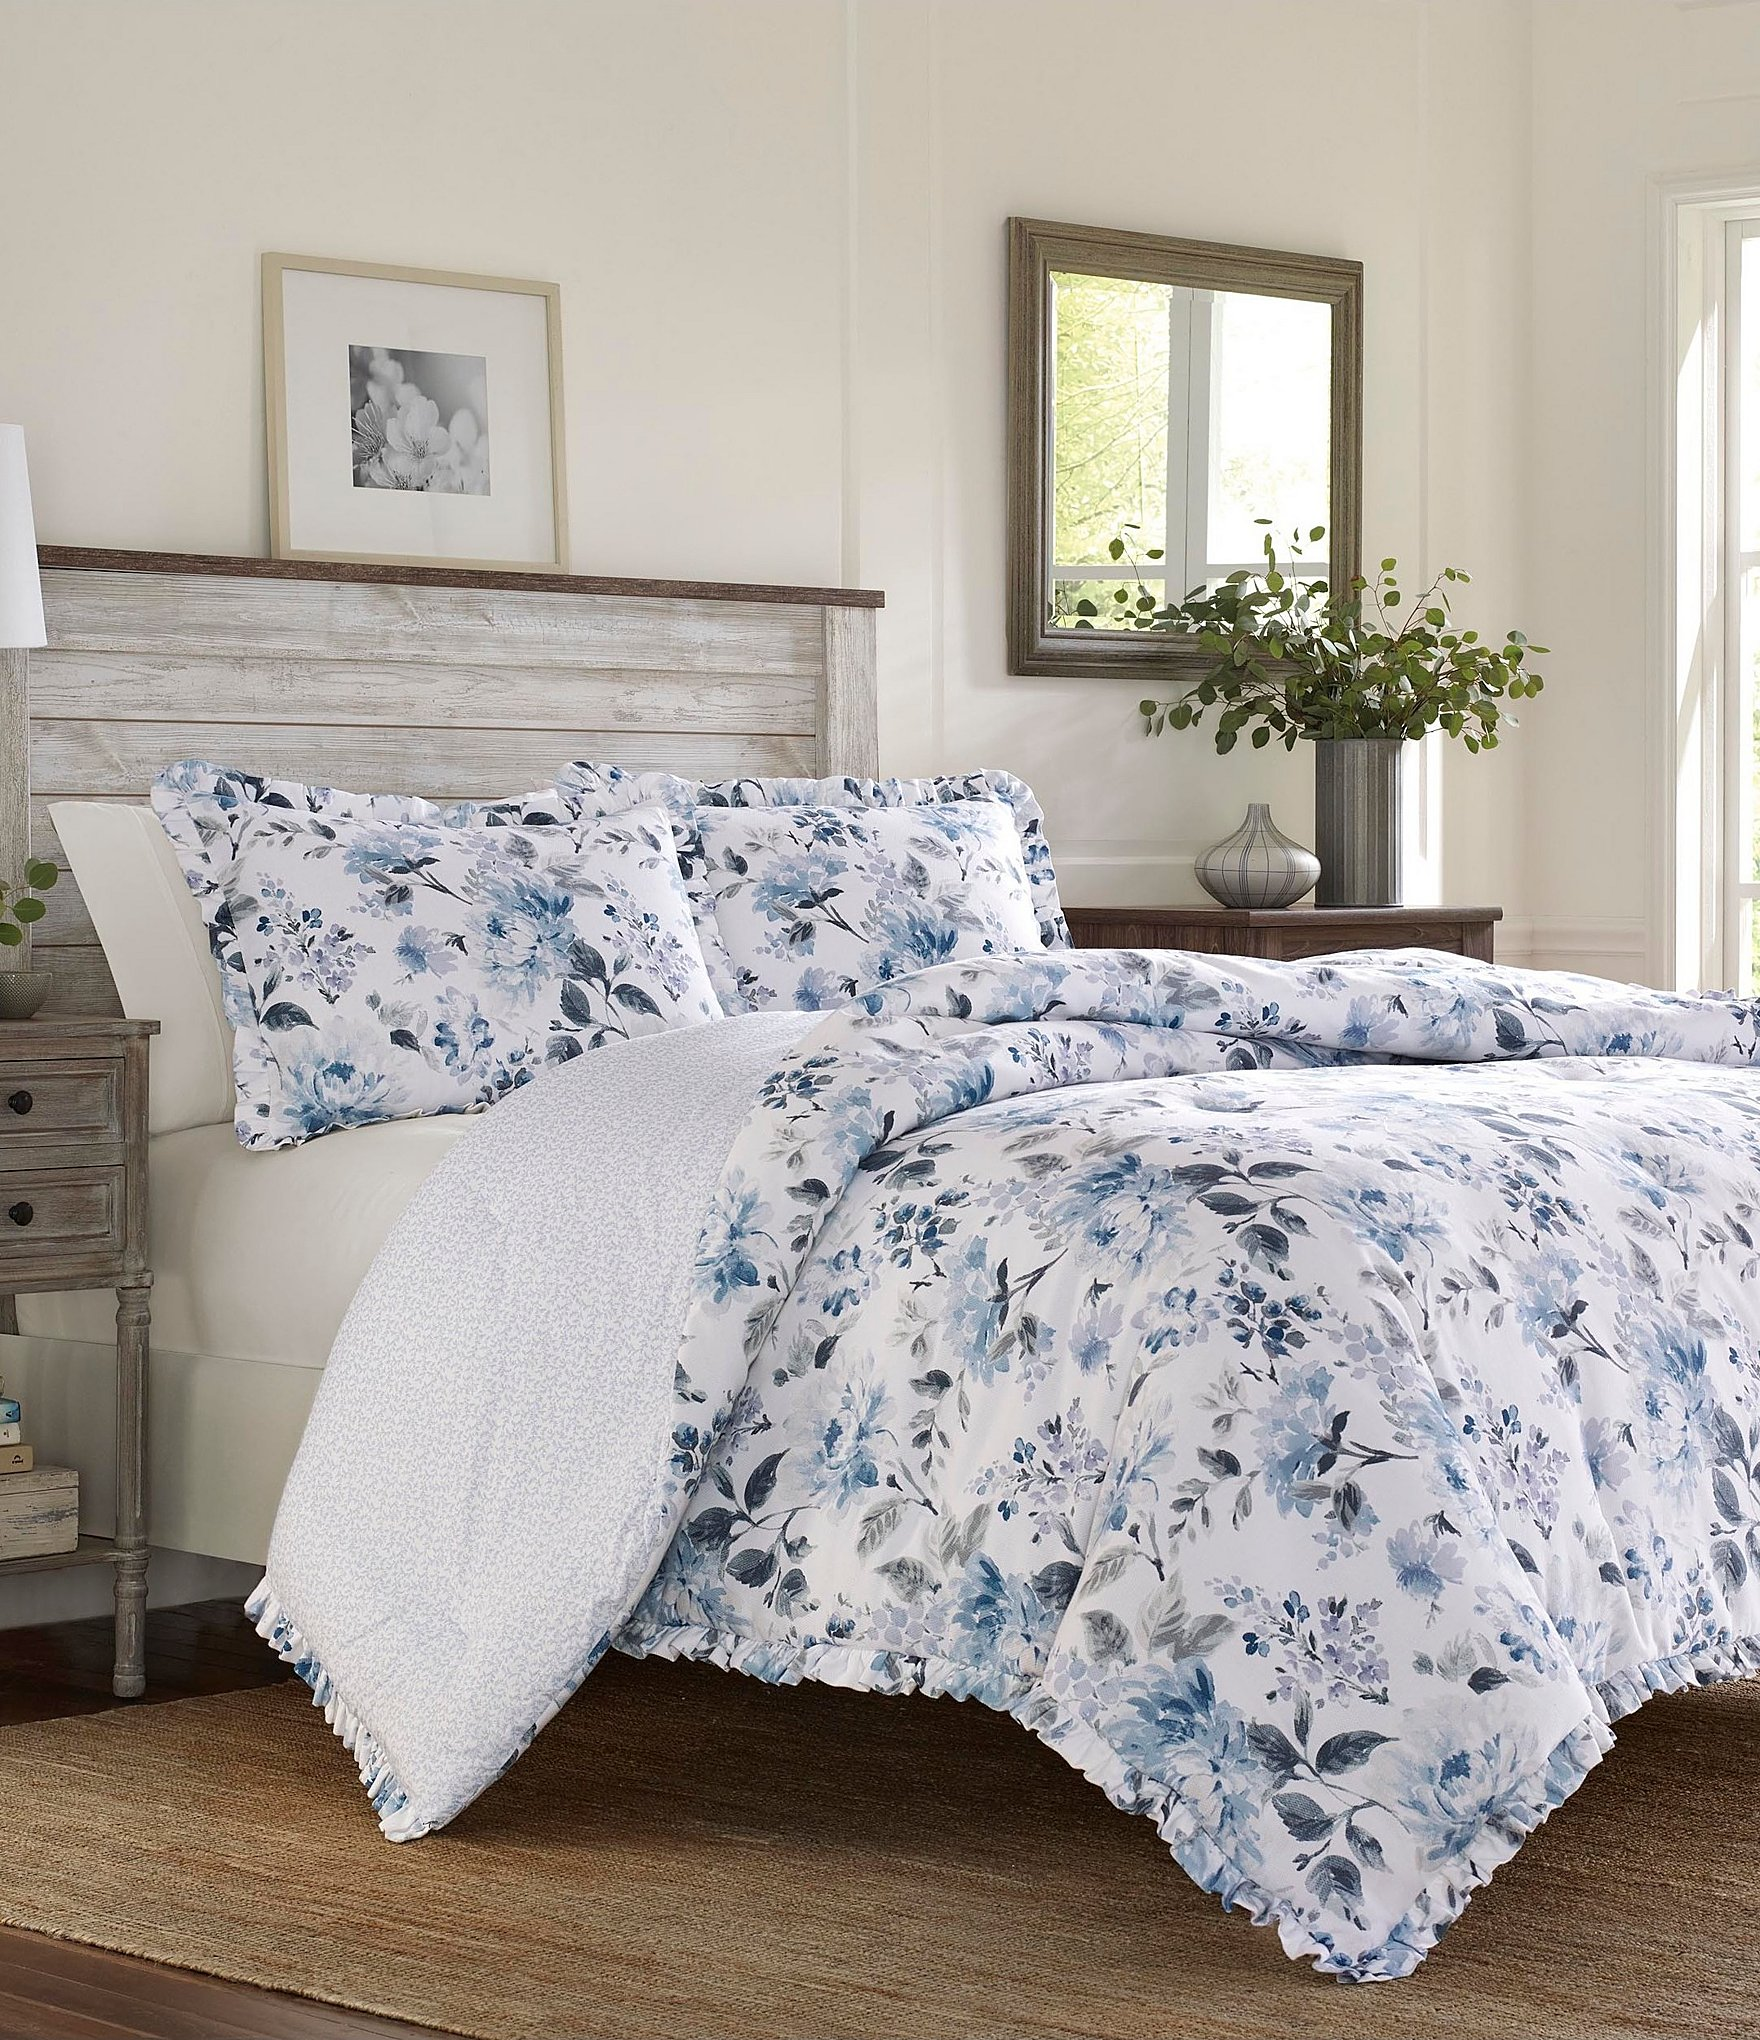 Laura Ashley Chloe Cottage Comforter Mini Set Dillard S